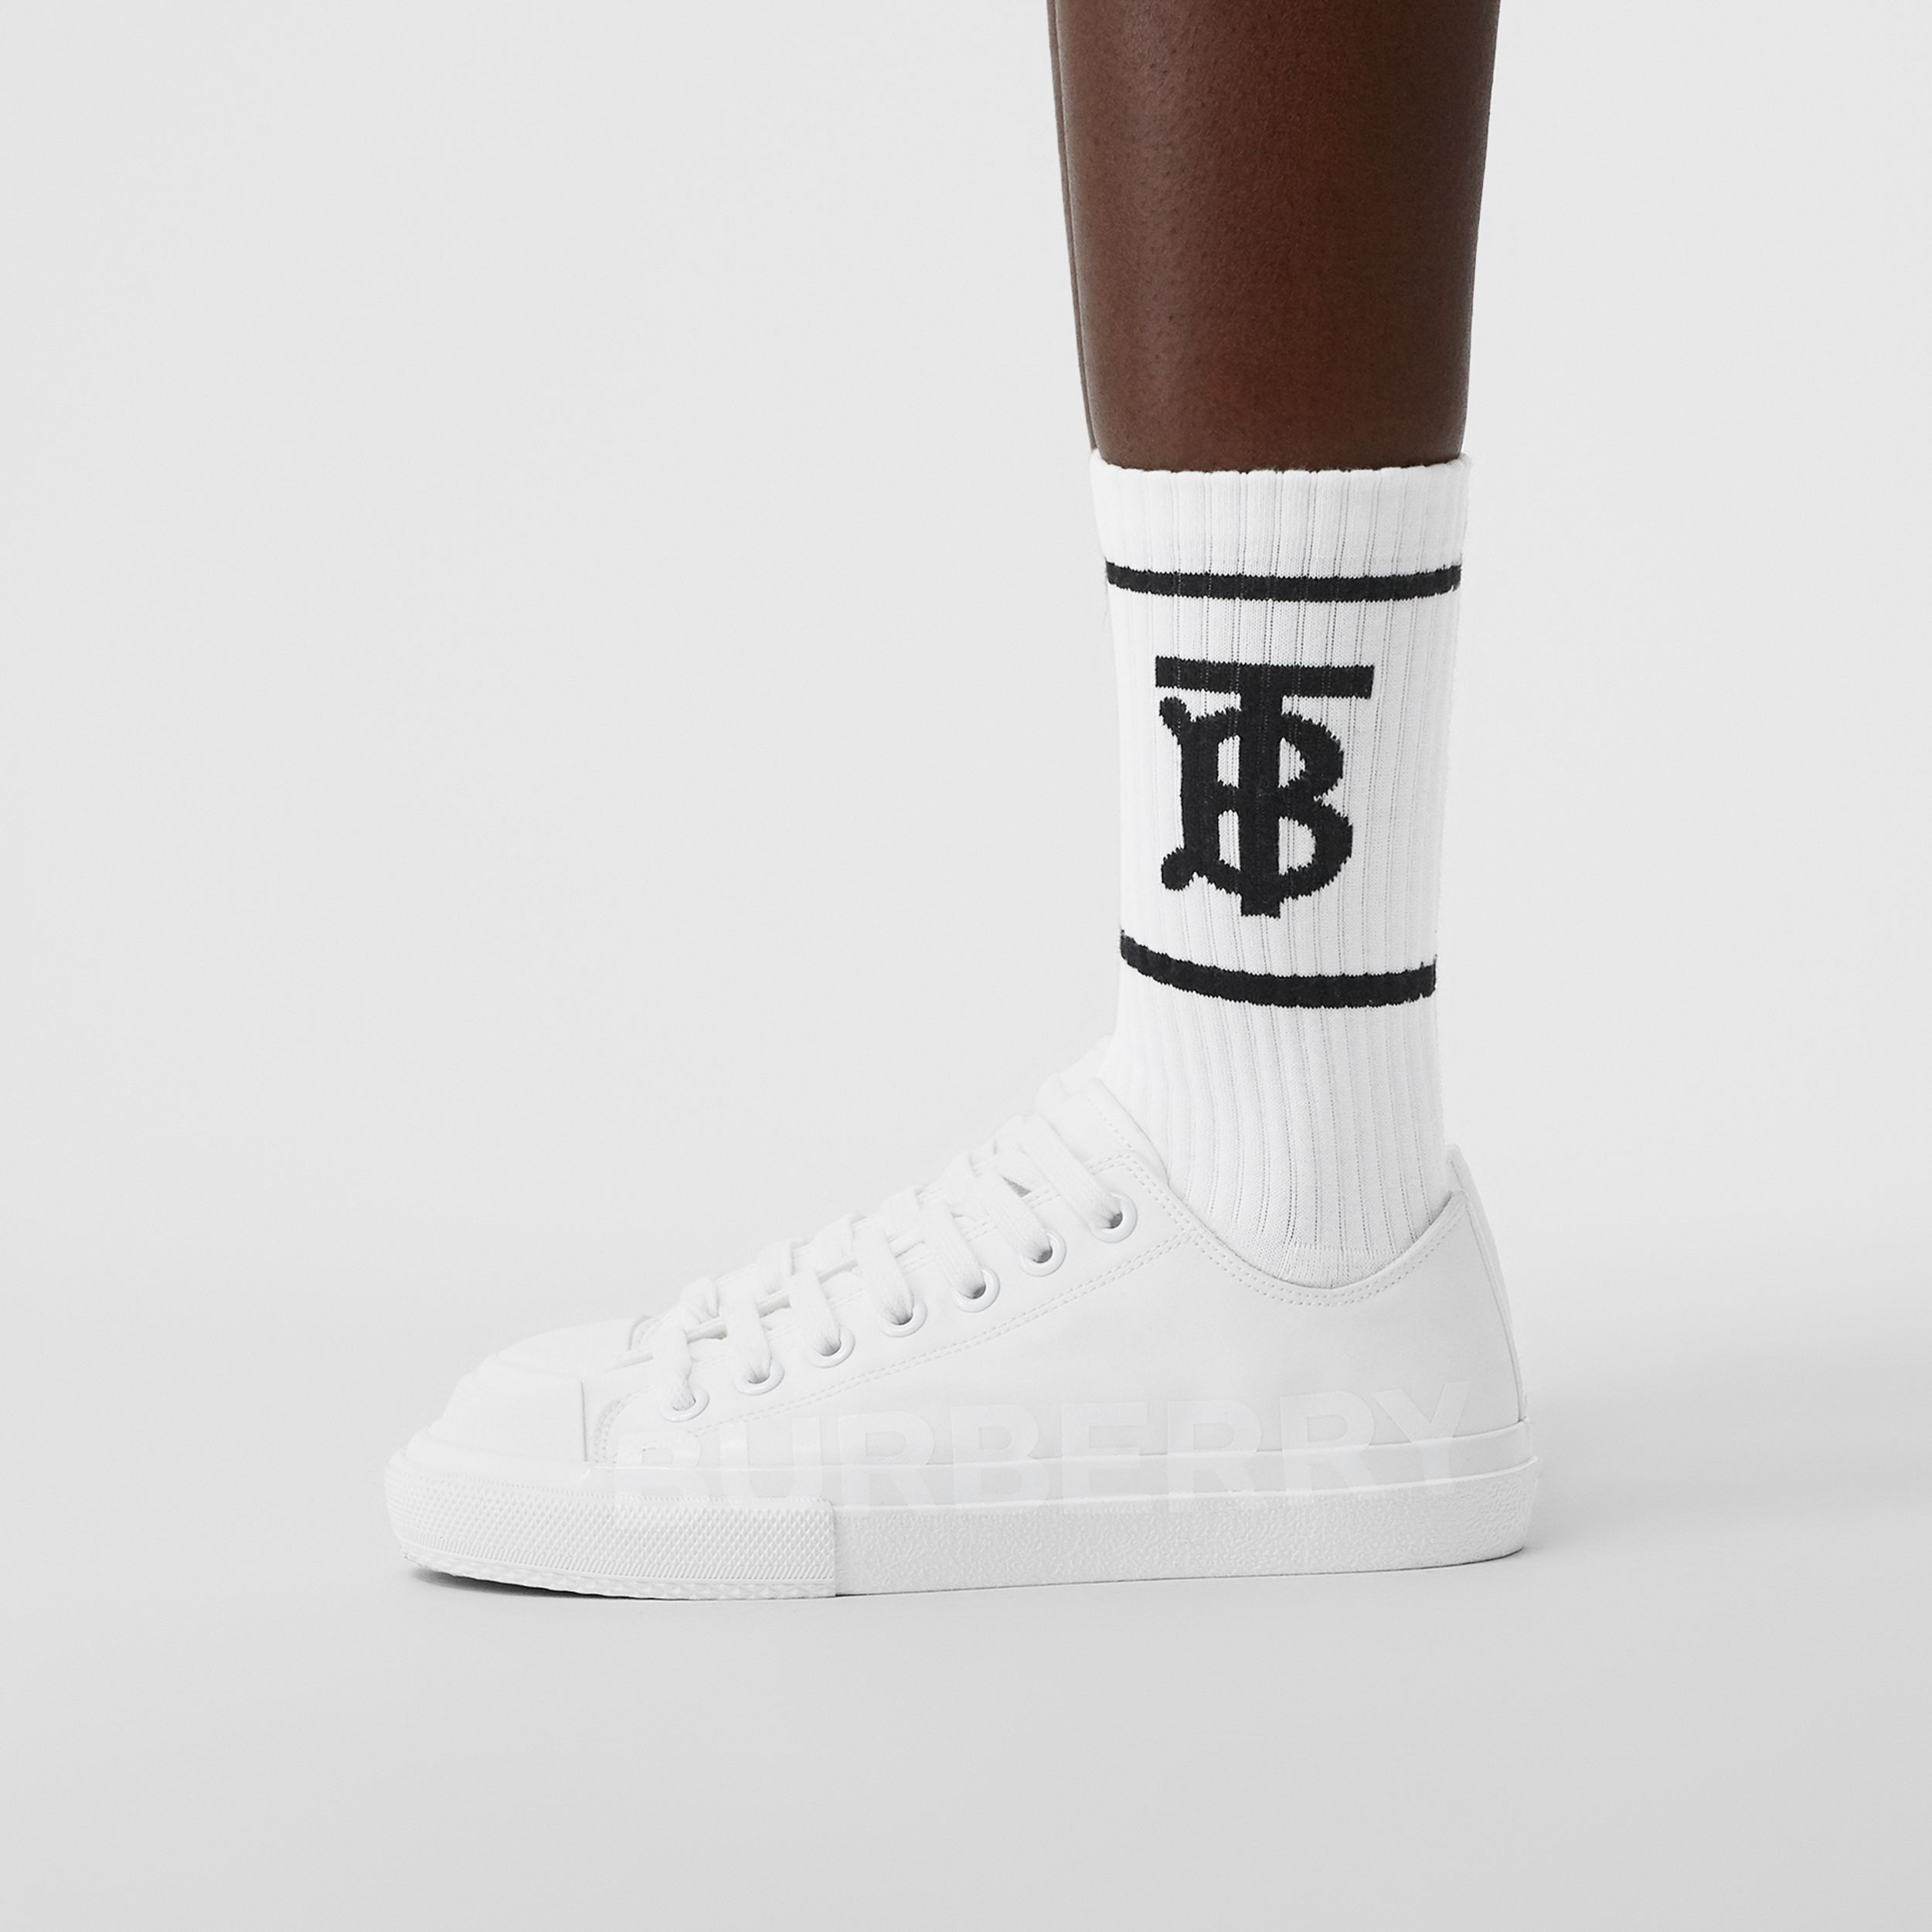 Monogram Motif Intarsia Socks in White | Burberry - 3